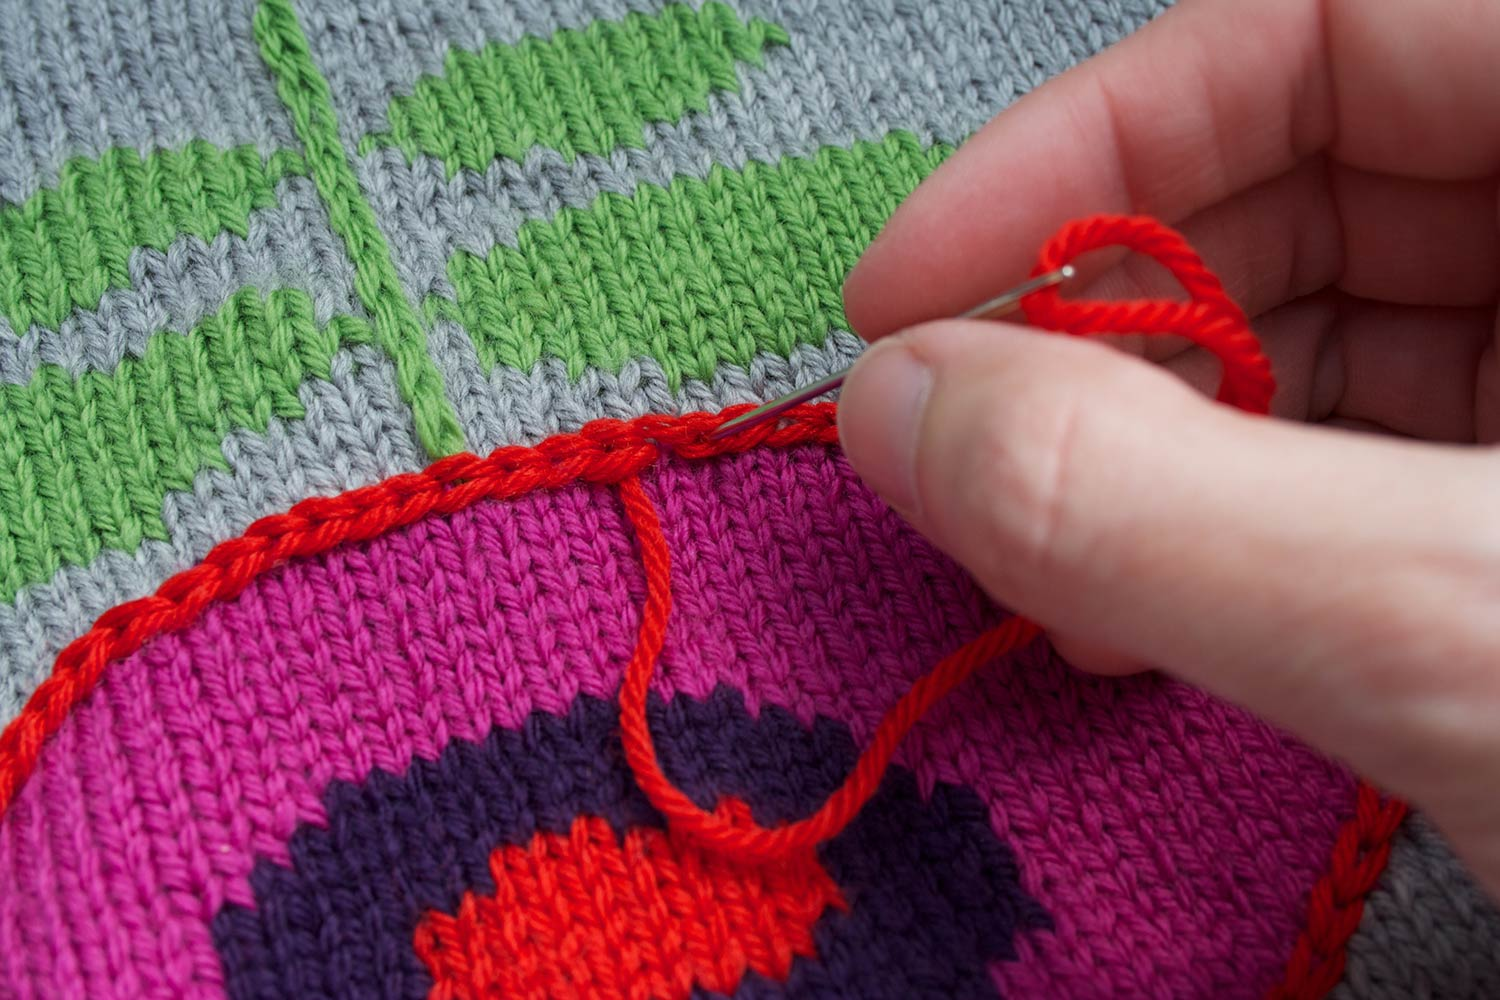 Fingers inserting tapestry needle into centre of last chain stitch worked, in order to complete the final stitched chain stitch.